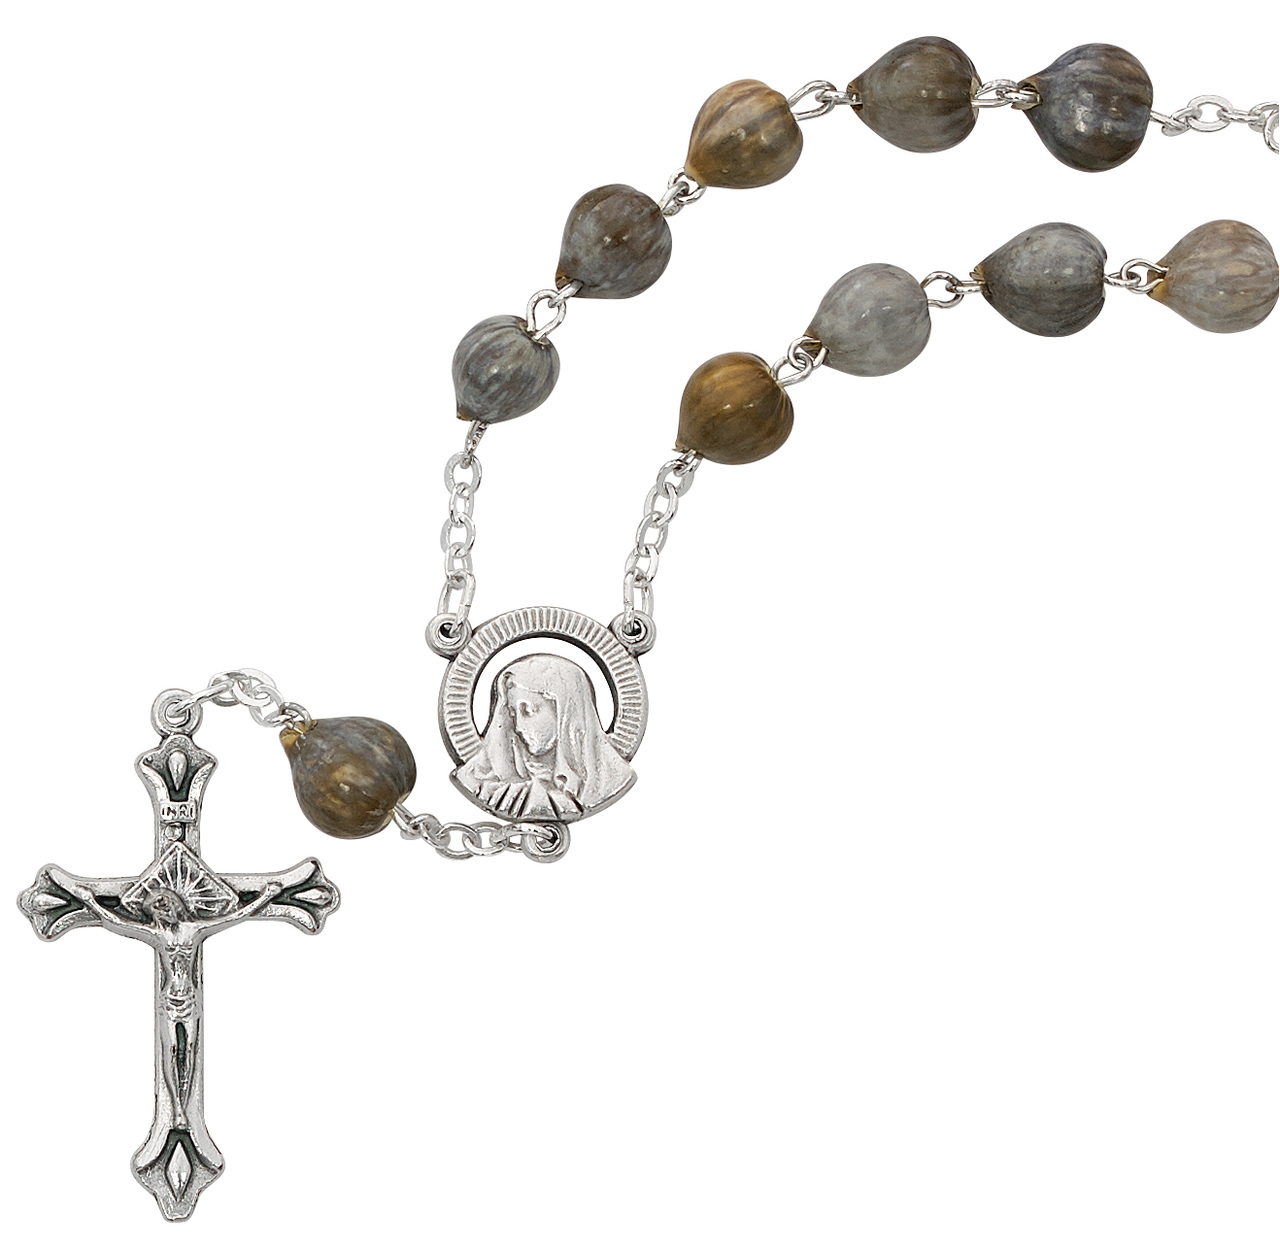 The Crucifix measures 5//8 x 1//4 Patron Saint Loneliness//Lost Causes Silver Plate Rosary Bracelet features 6mm Ruby Fire Polished beads The charm features a St Rita of Cascia medal